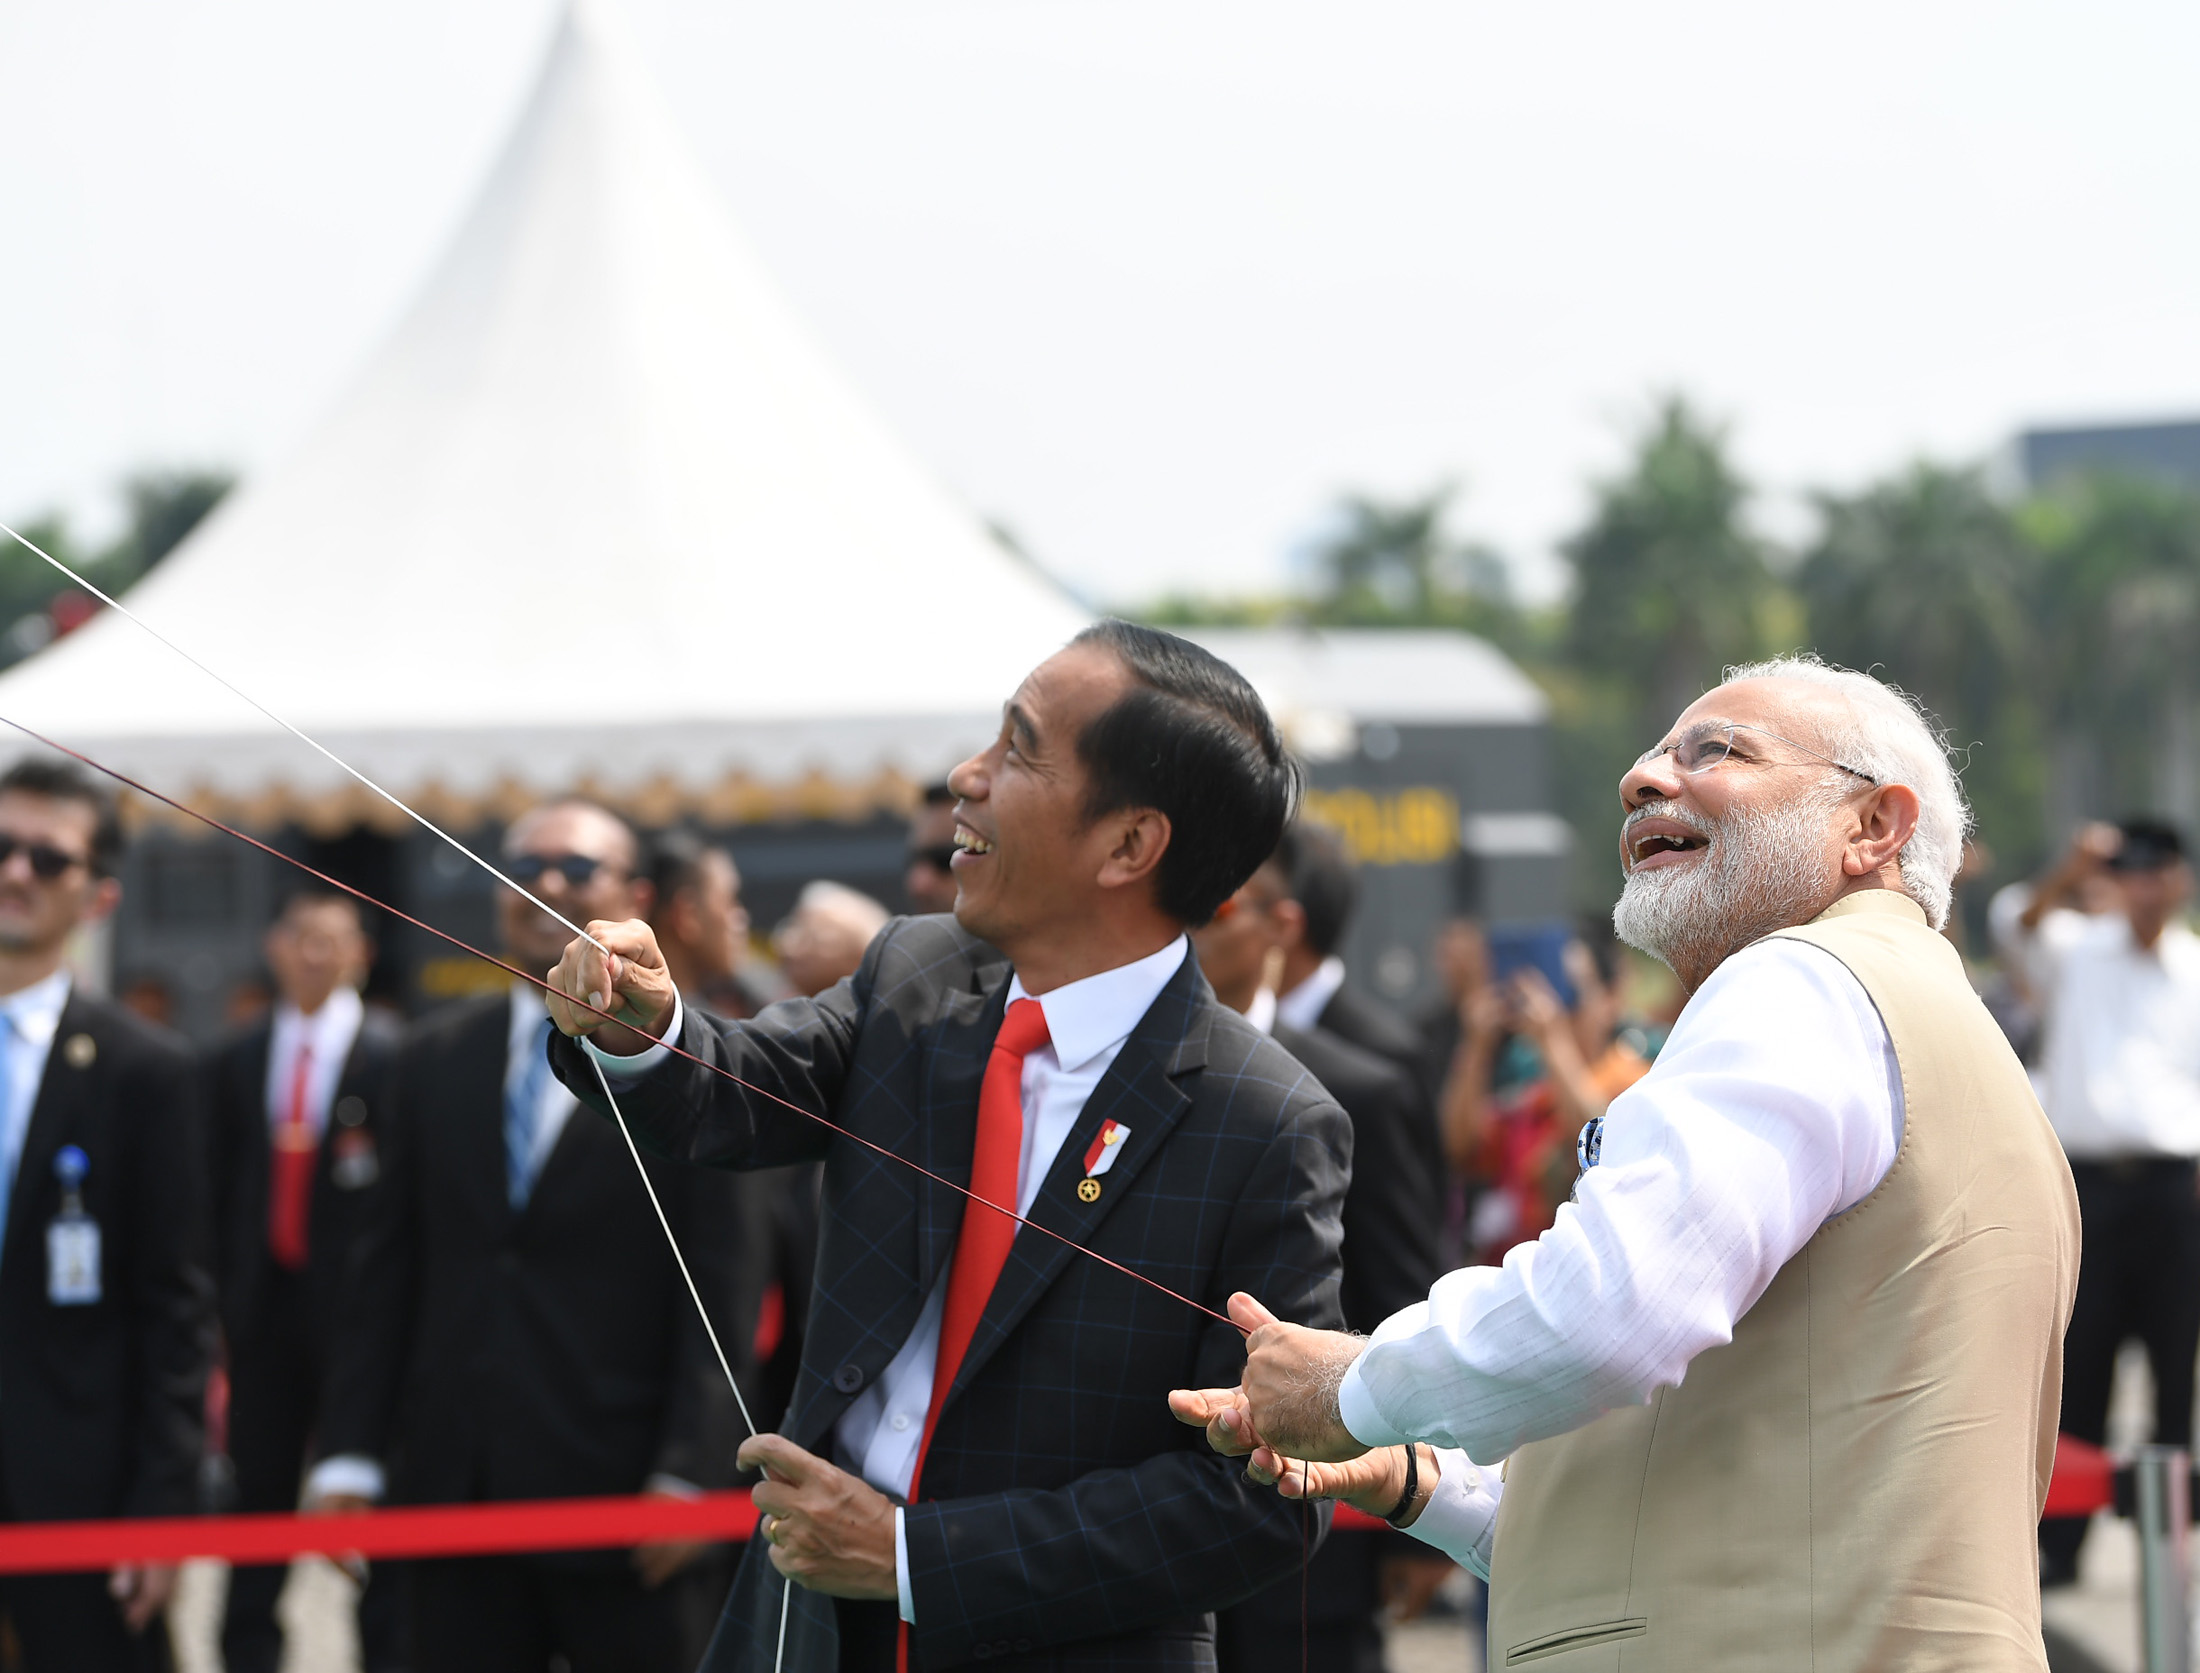 Prime Minister Narendra Modi and the President of Indonesia Joko Widodo attend the kite flying session, during the inauguration of the India-Indonesia Kite Exhibition, in Jakarta, Indonesia on May 30, 2018. Credit: PIB